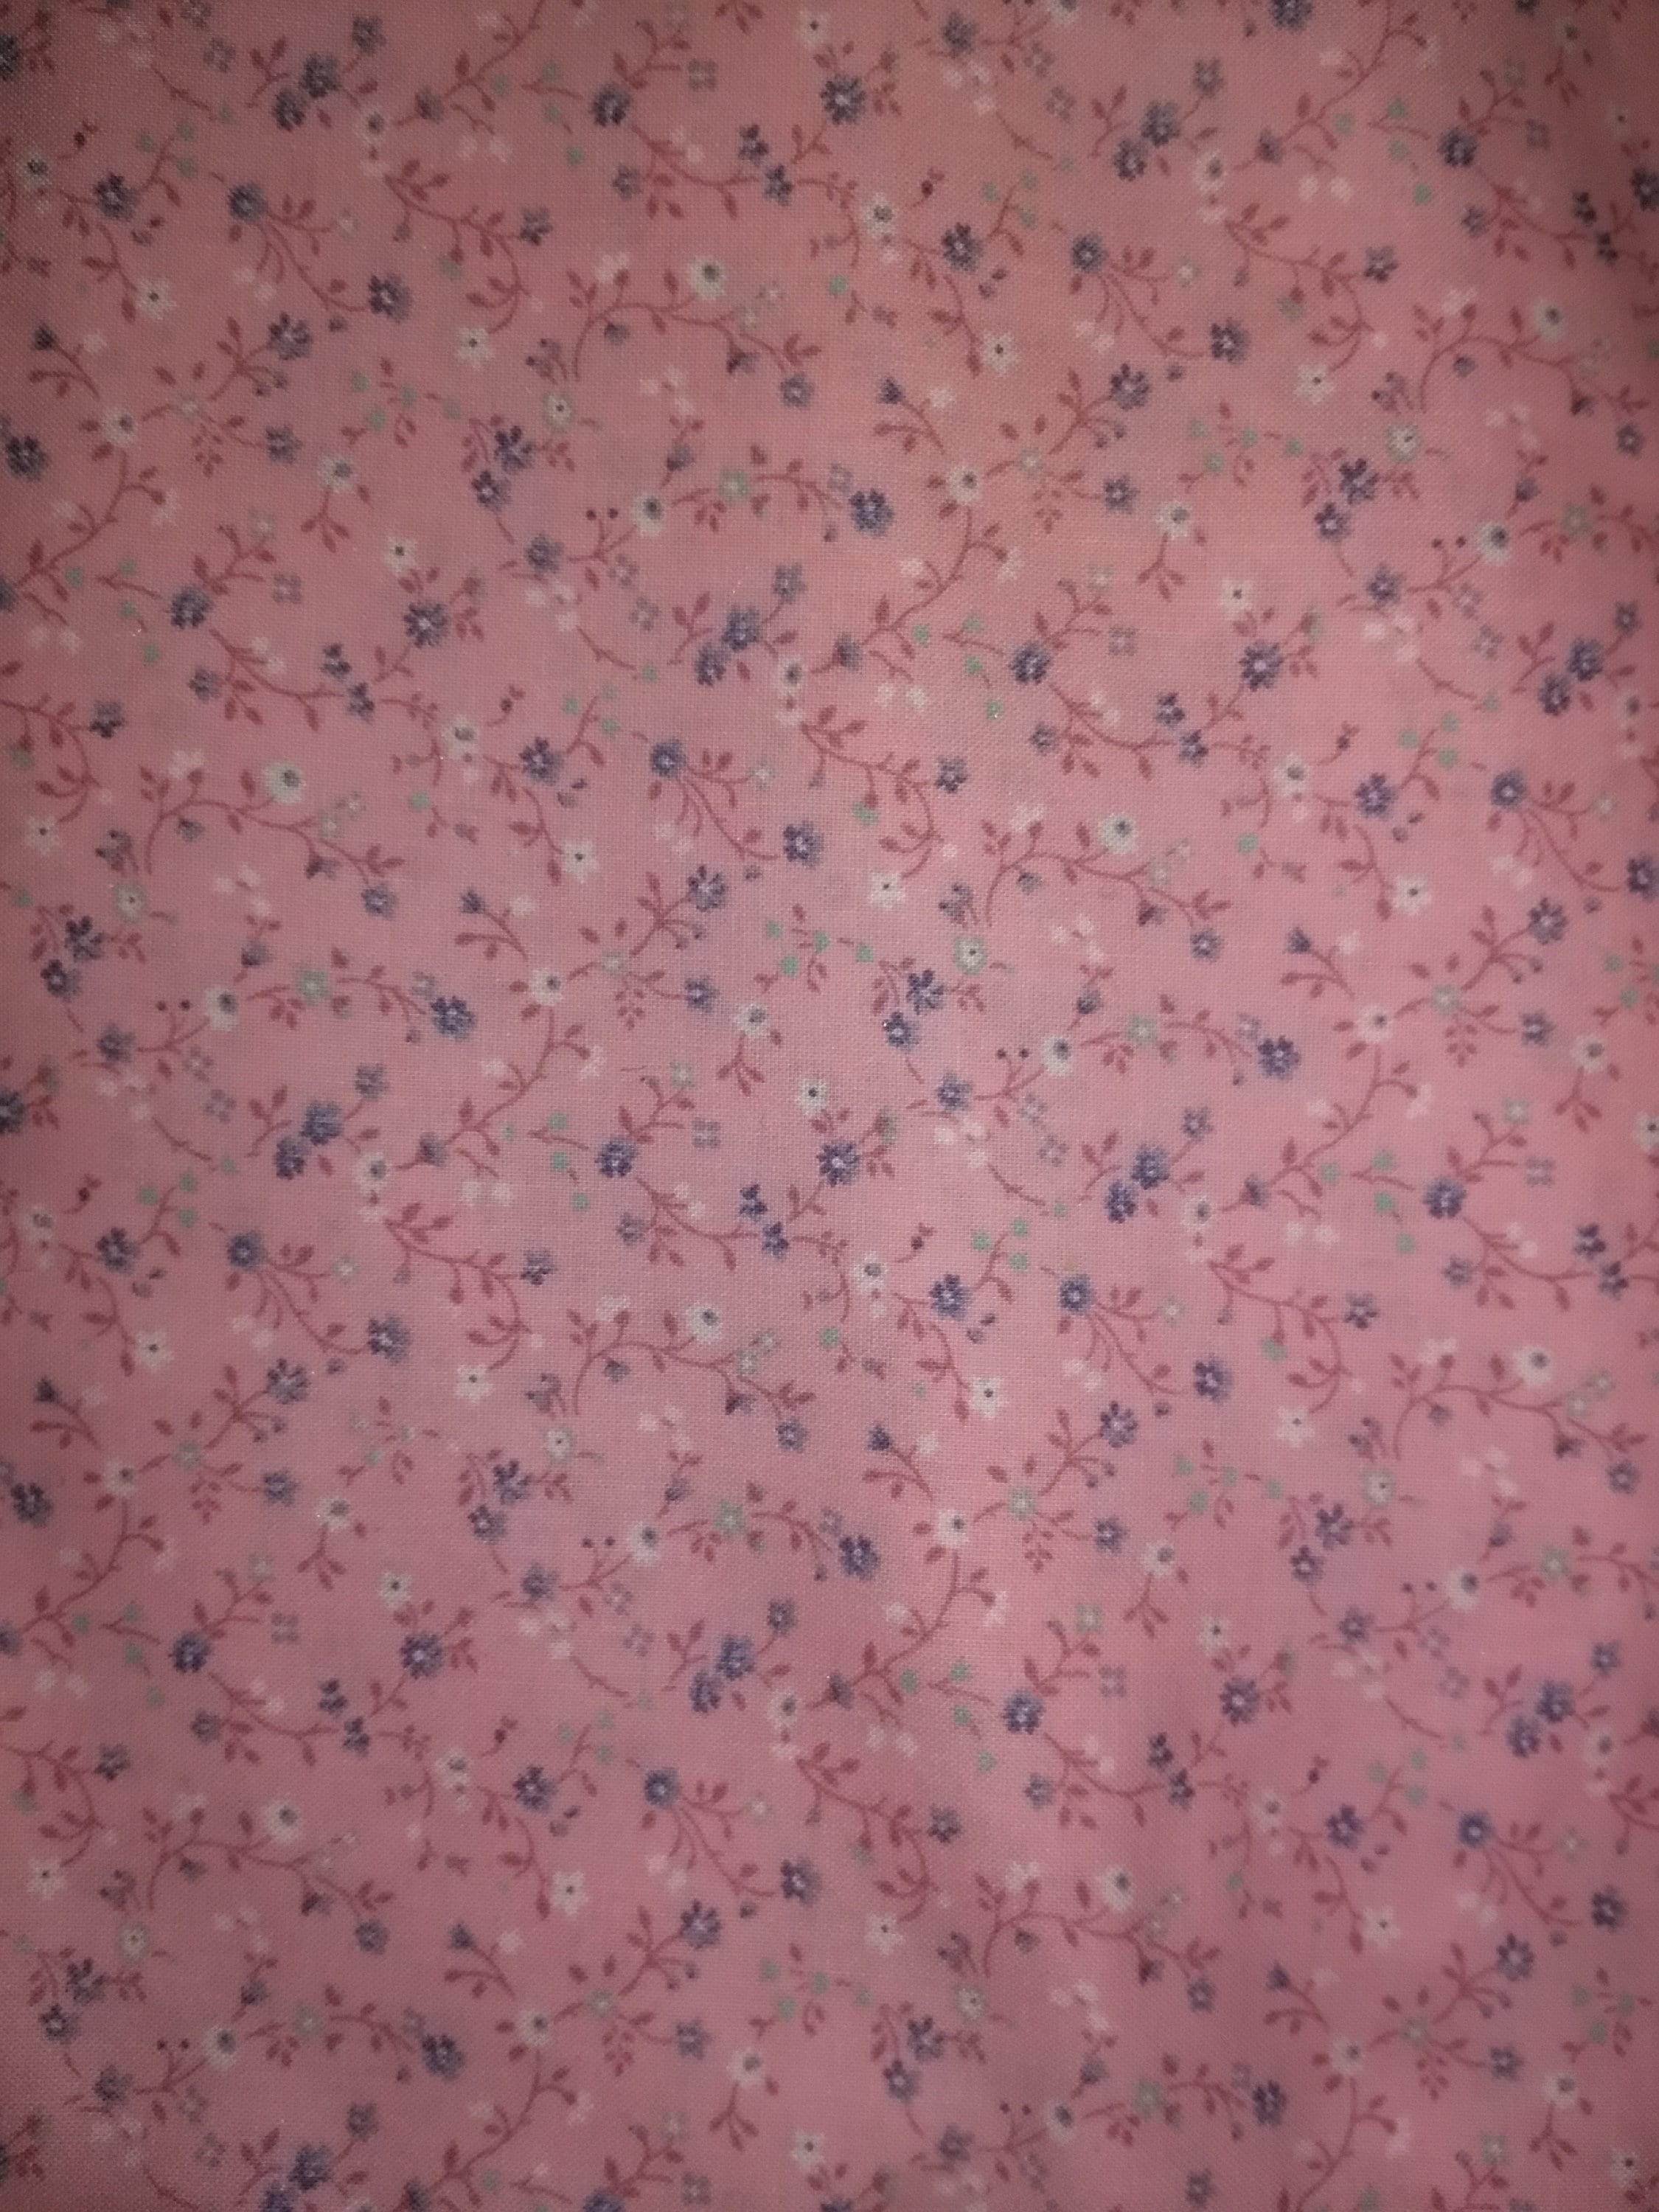 Pink Cotton Fabric With Blue And White Flowers Etsy